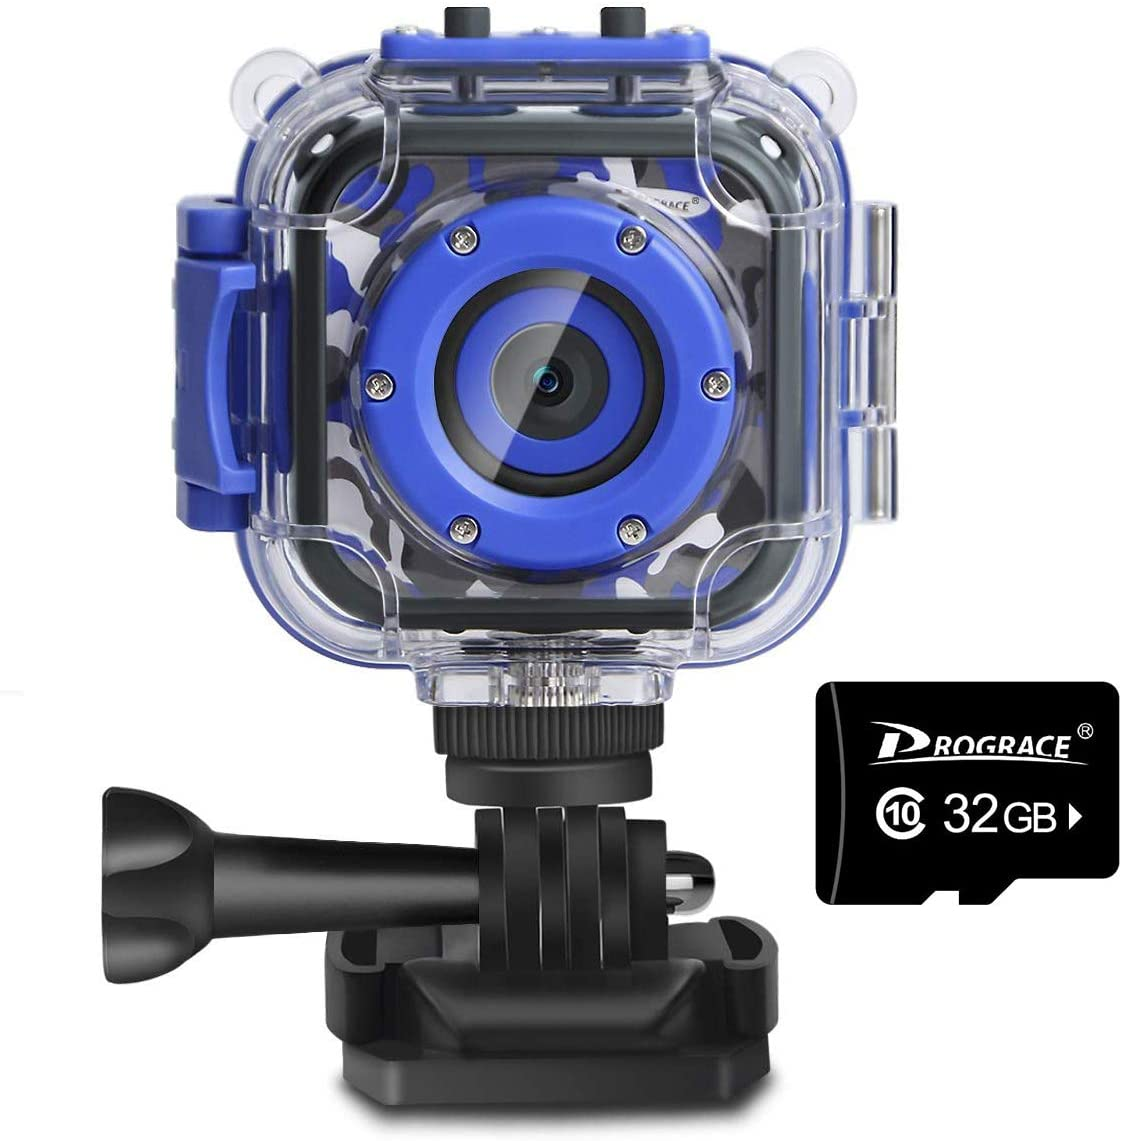 PROGRACE Children Kids Waterproof Camera HD 1080P Action Camera for Toddler(Blue) Bundle with 32GB Memory Card Class 10 TF Card